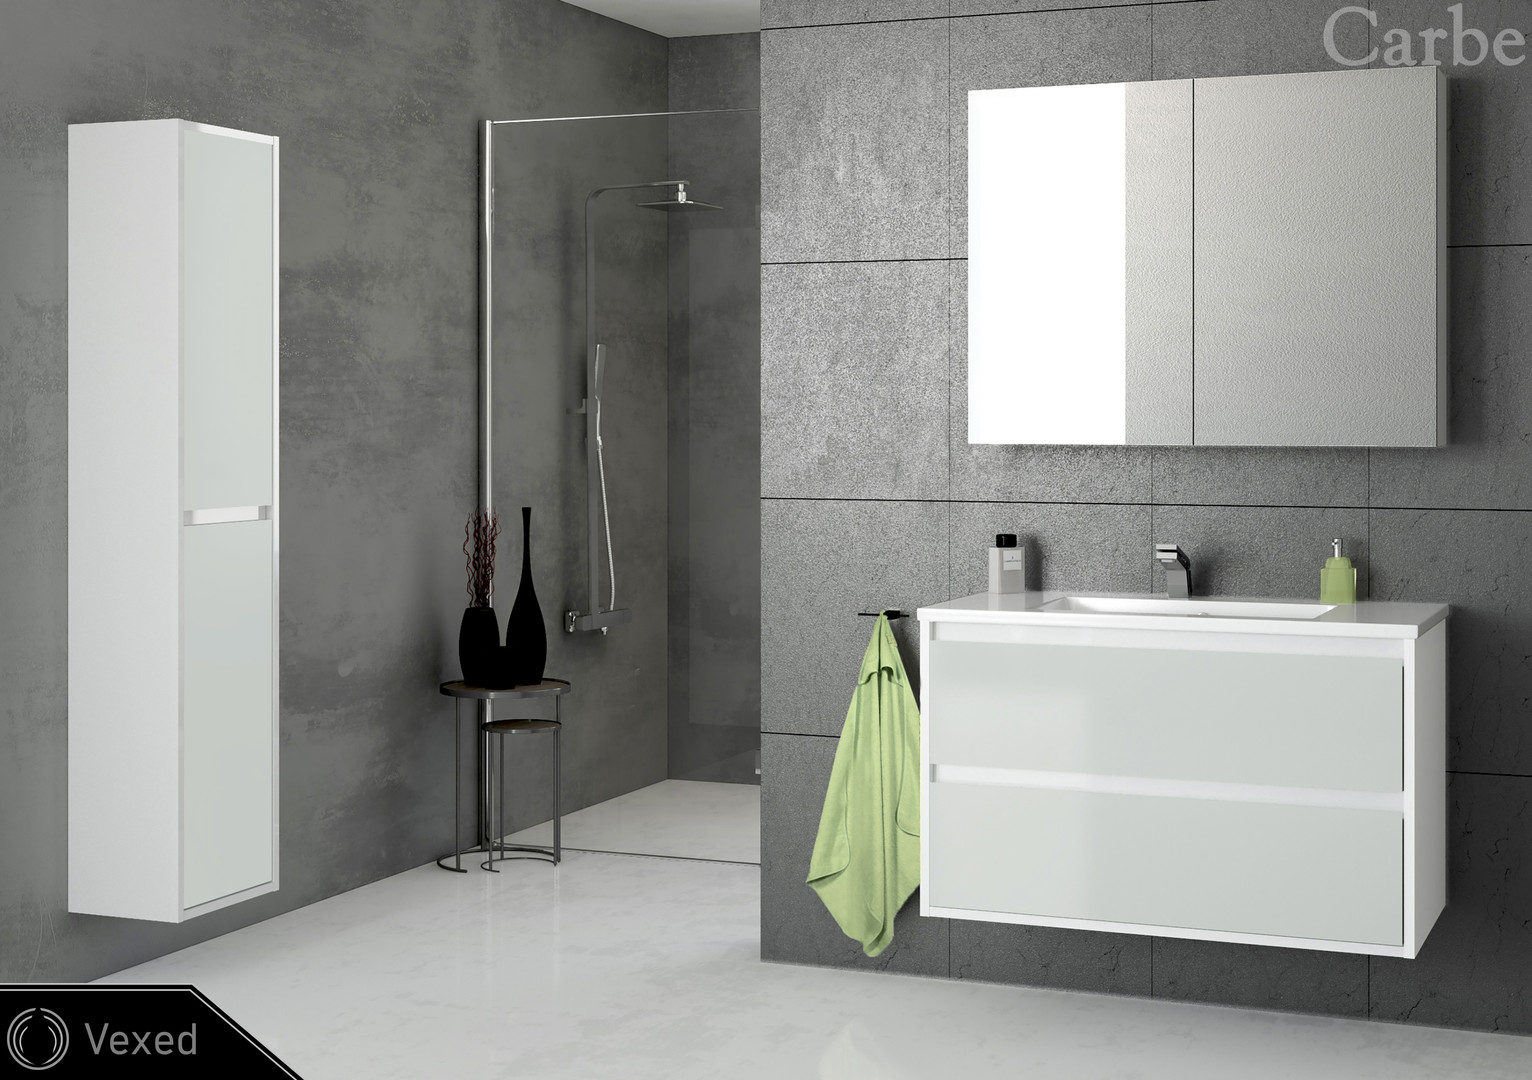 Vexed - Arctic White HG, Classic Grey Glass, Dolmite Washbasin, Soft Closing